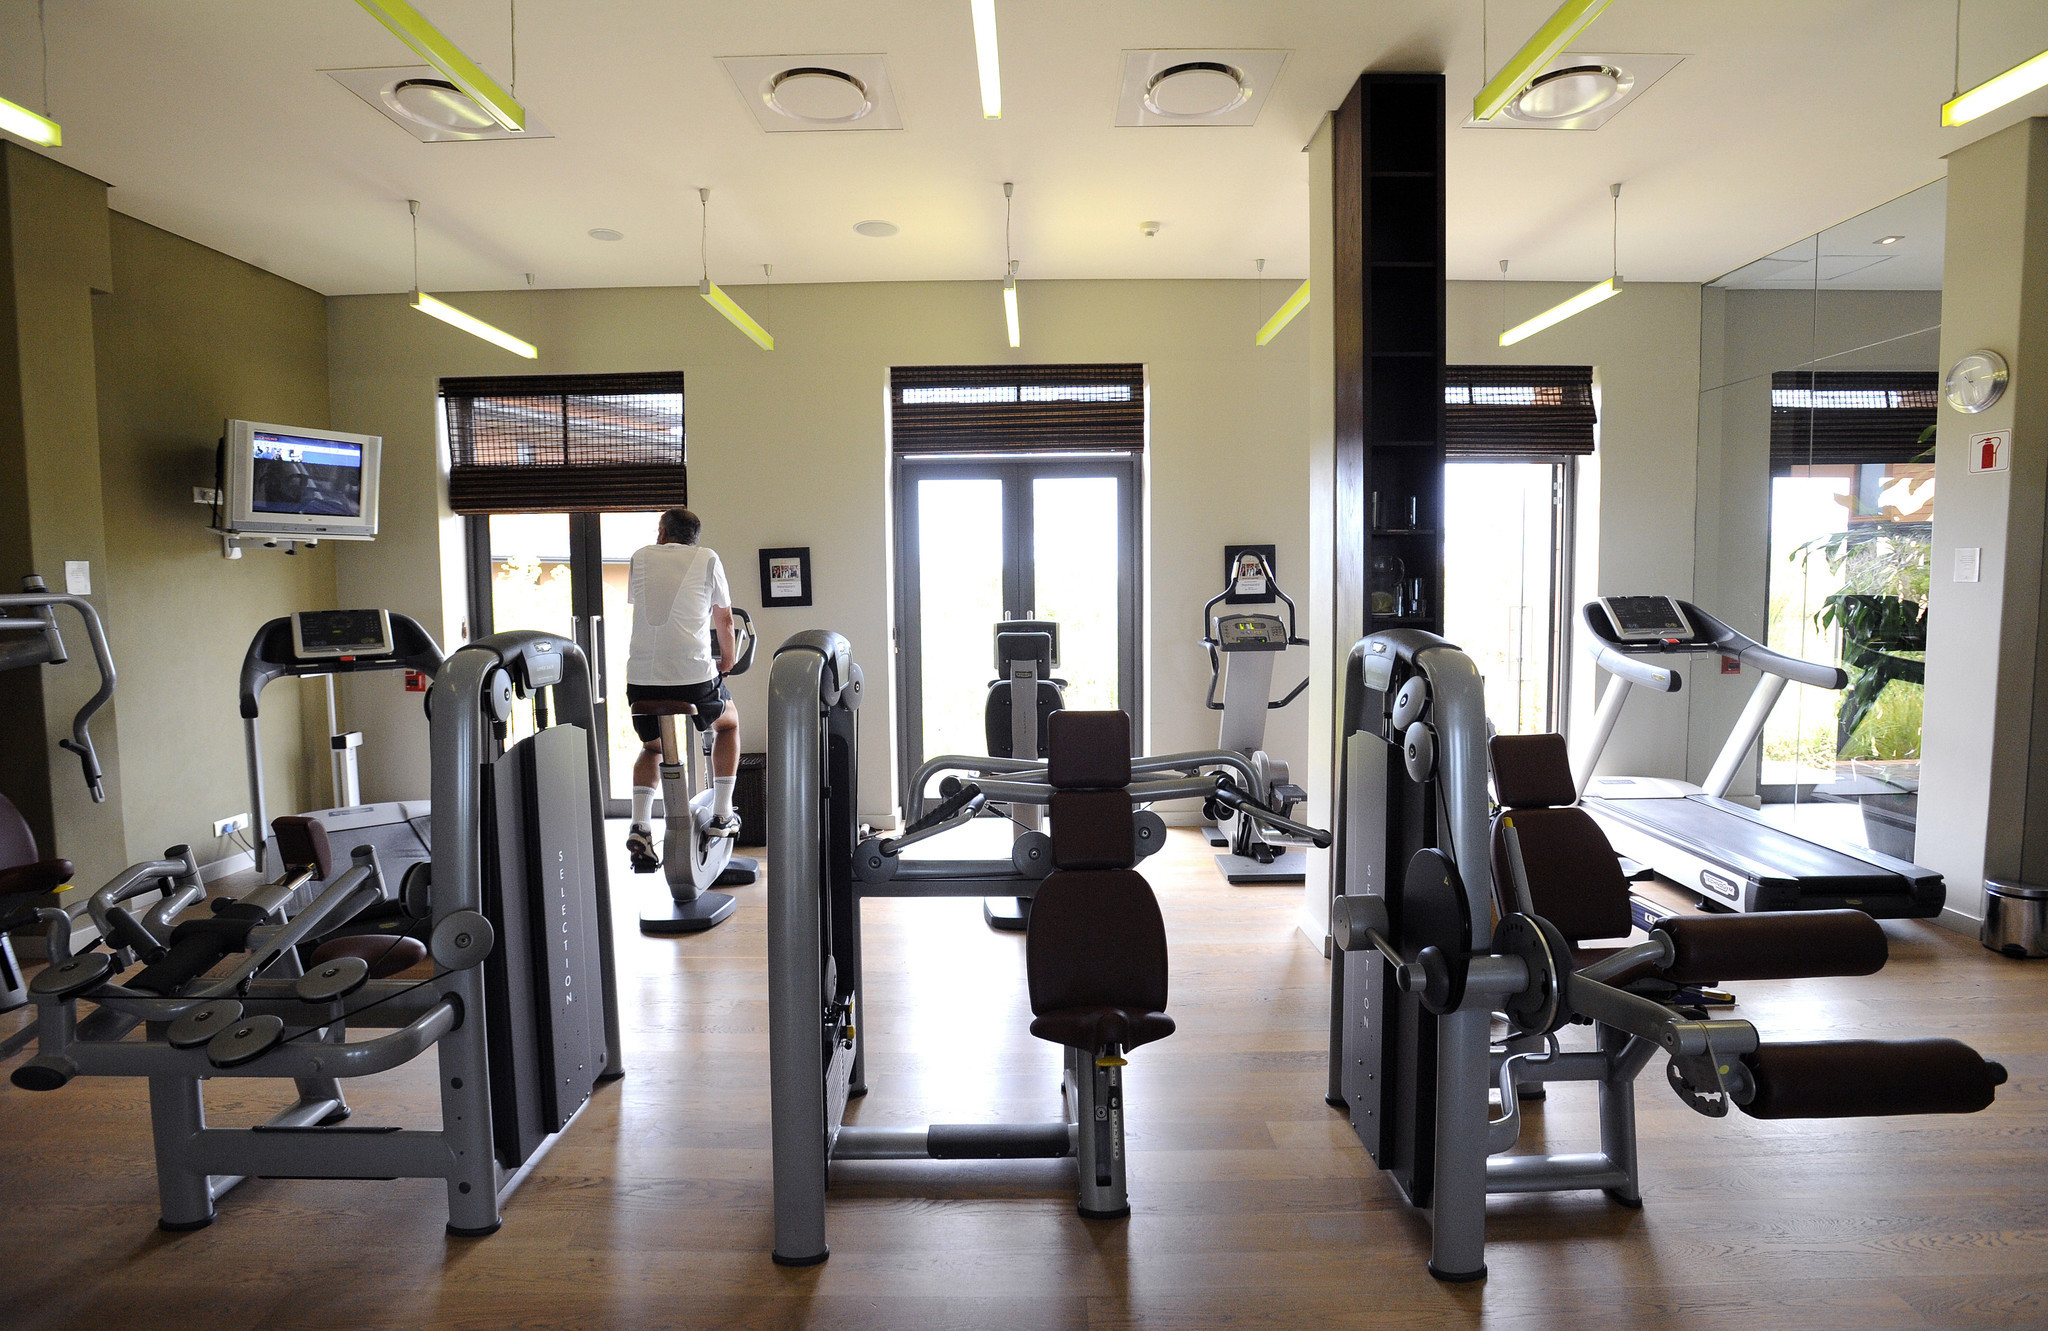 Hotels getting creative with fitness offerings for next-gen travelers